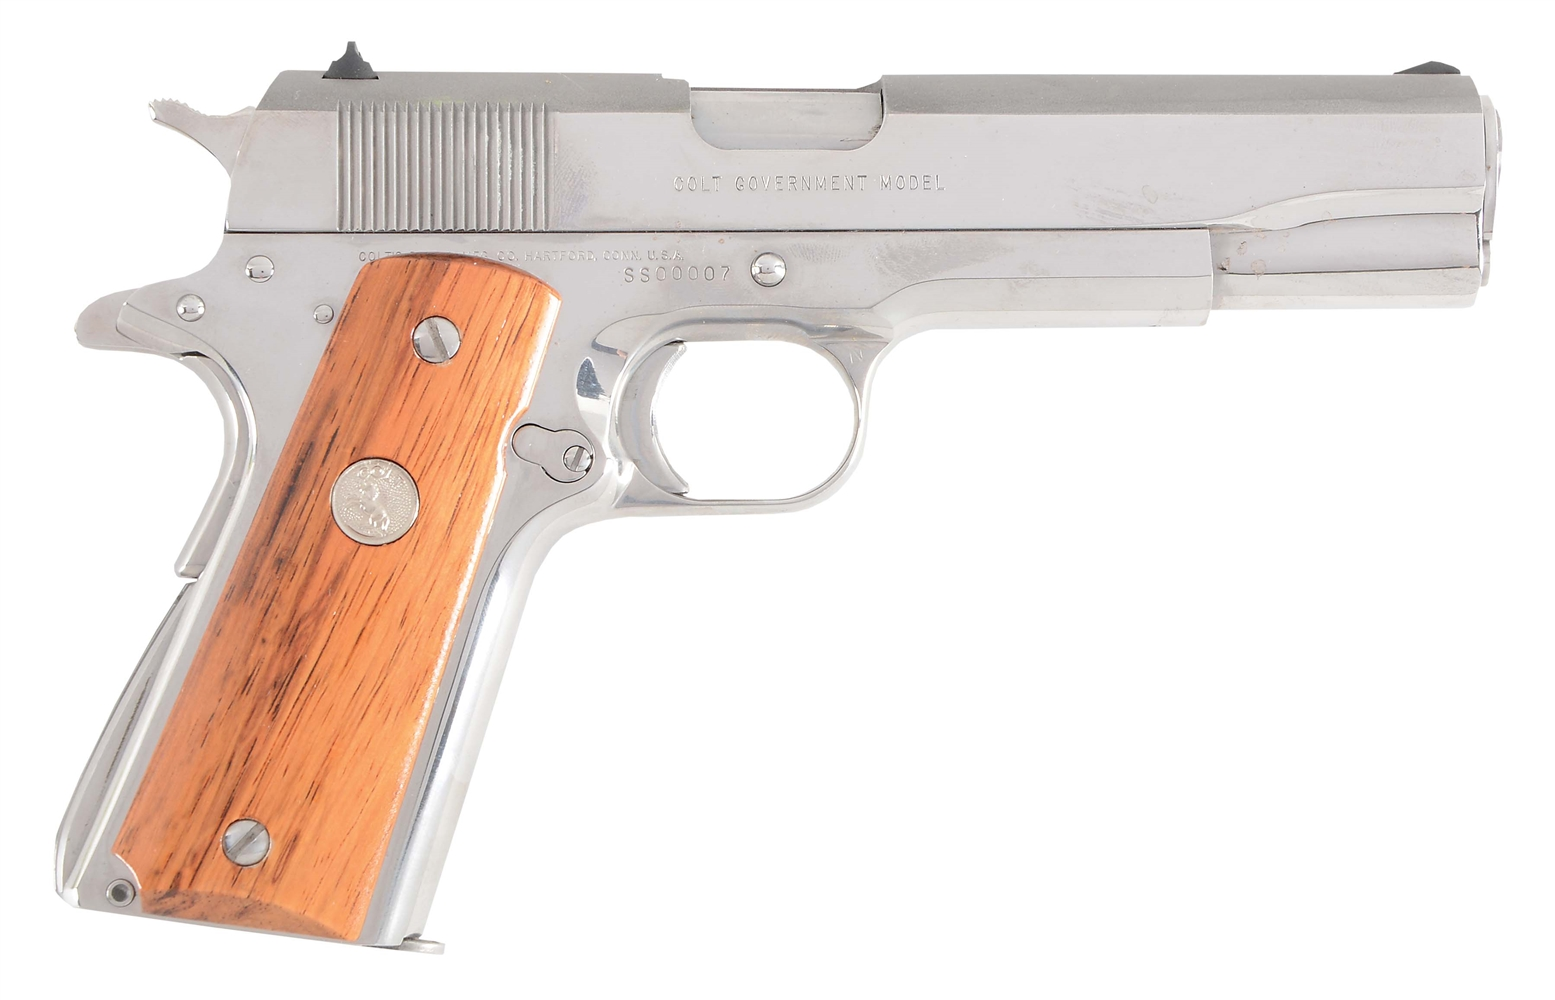 (C) BOXED COLT CUSTOM GUN SHOP MODEL 1911-A1 SILVER STAR SEMI-AUTOMATIC PISTOL.